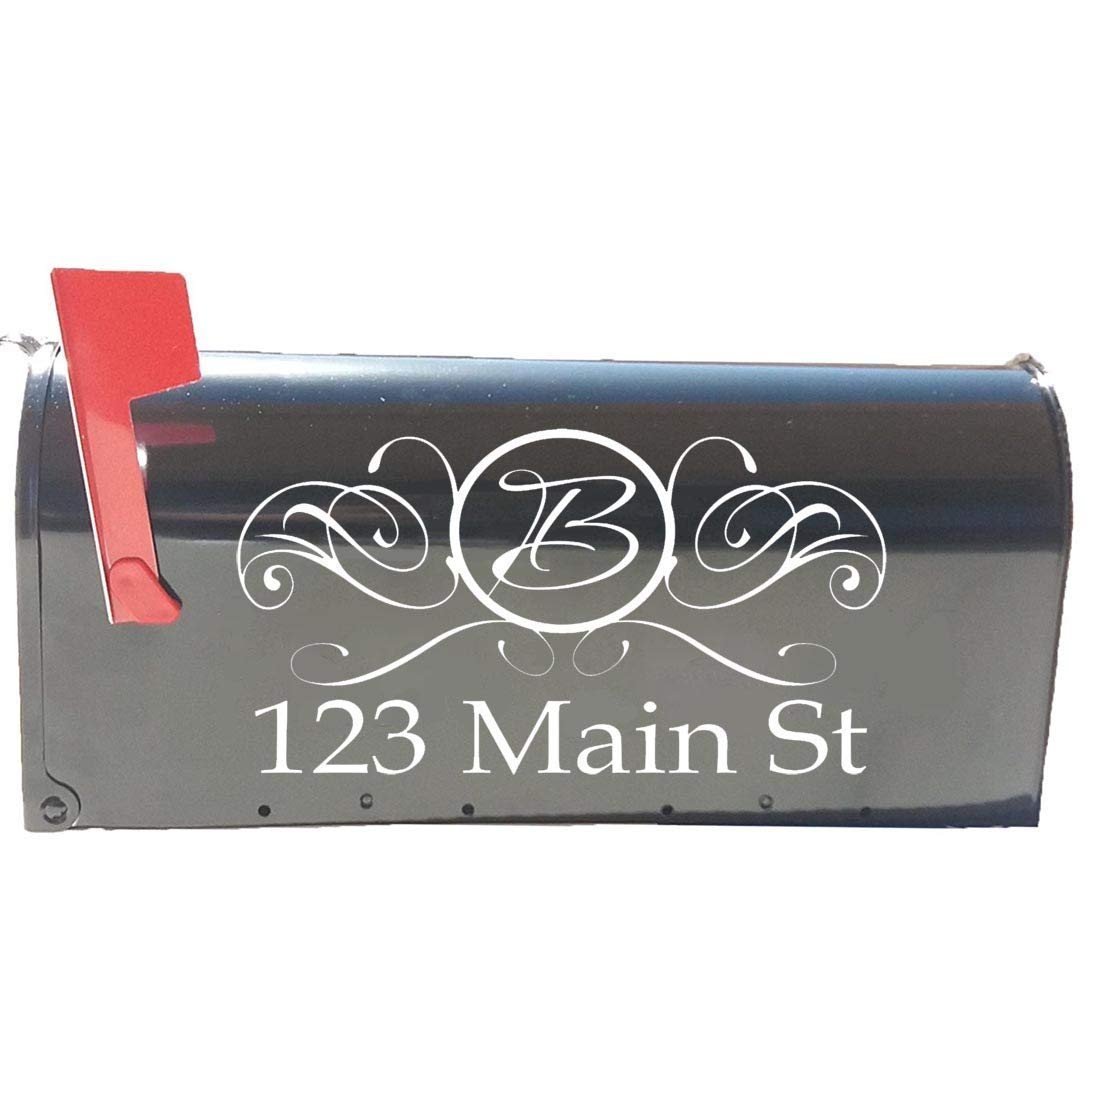 Mailbox Numbers and Letters